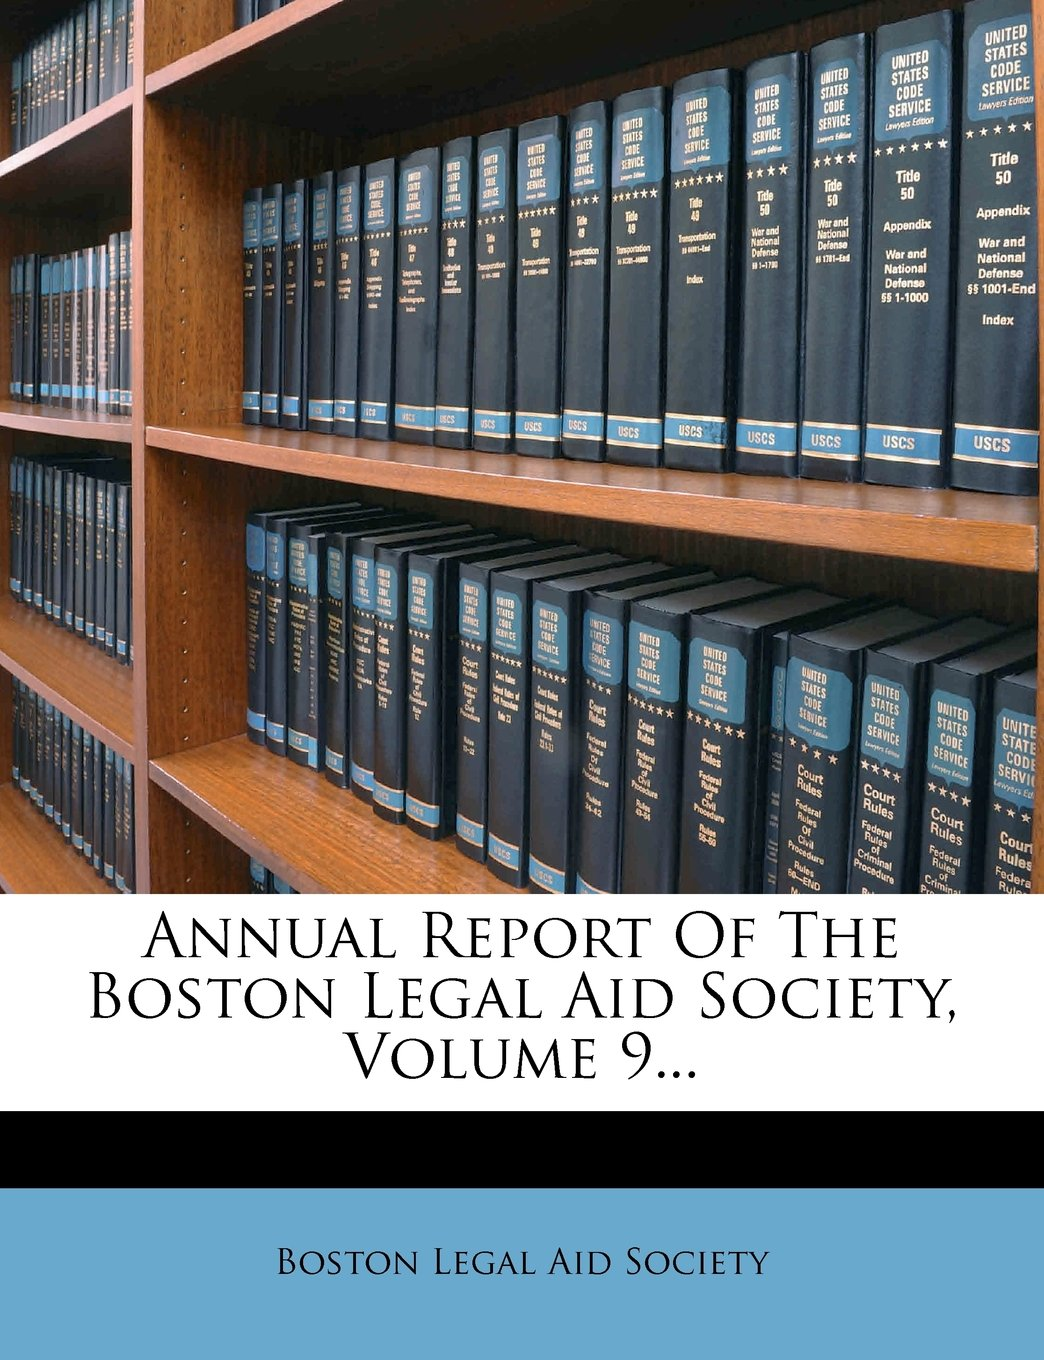 Annual Report Of The Boston Legal Aid Society, Volume 9... pdf